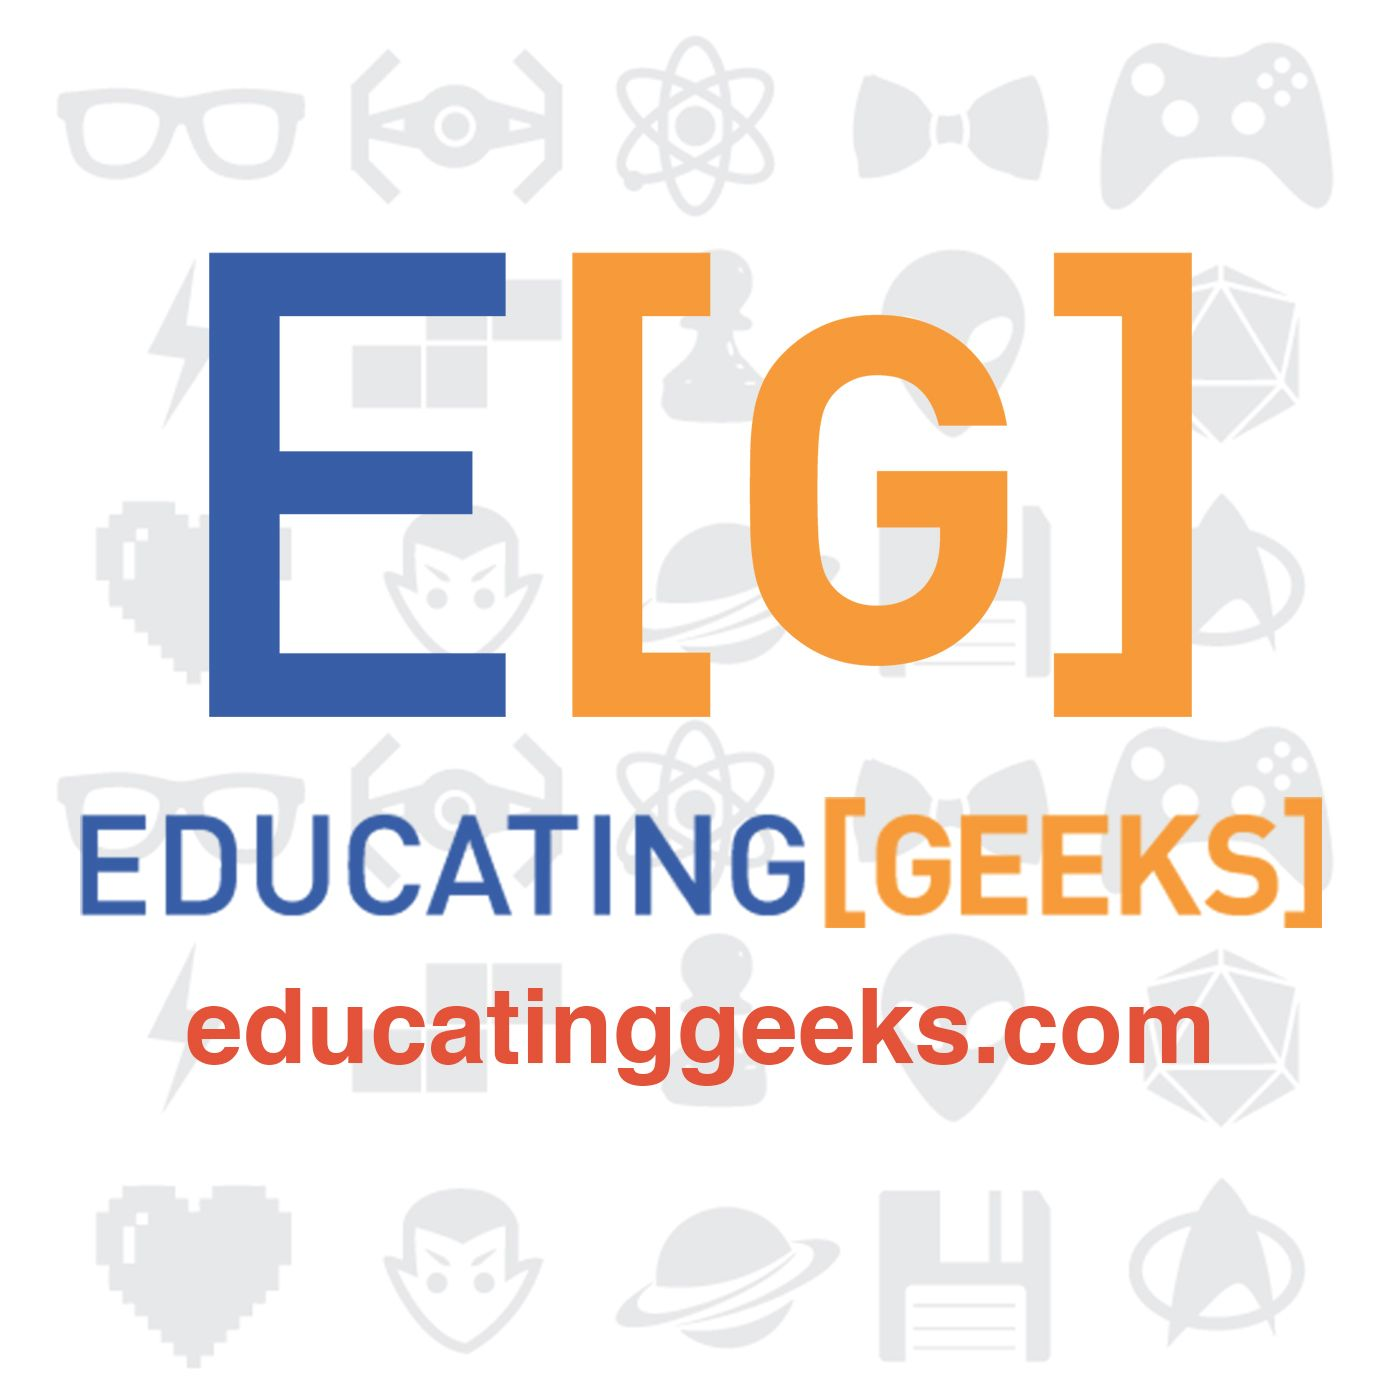 EducatingGeeks